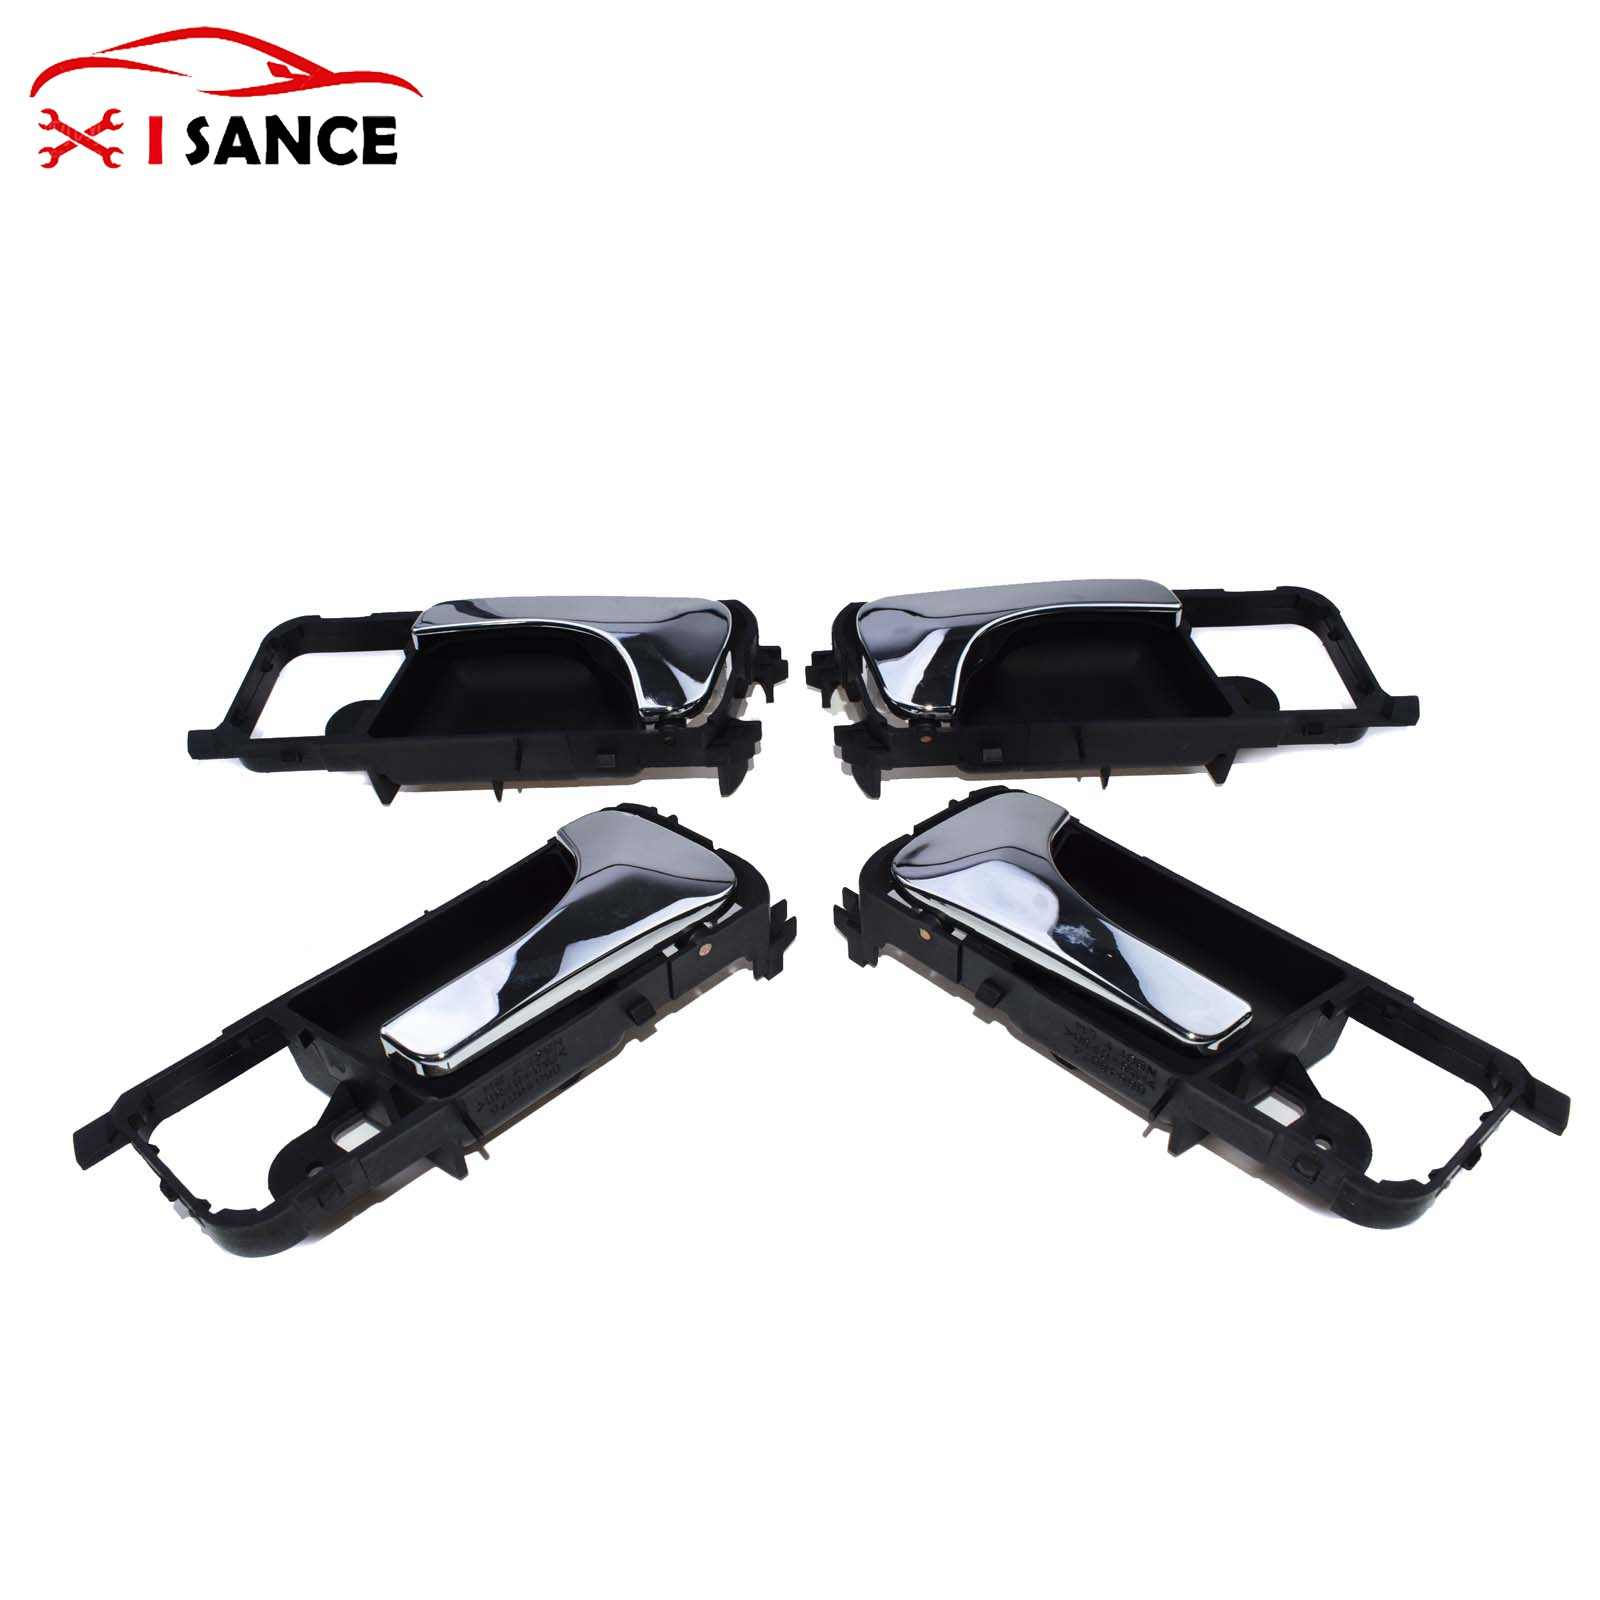 Inside Chrome Door Handle Front Rear Lfet Right 96548063 96548064 For Gm Optra Lacetti Suzuki Forenza 2003 2004 2005 2006 2007 Aliexpress